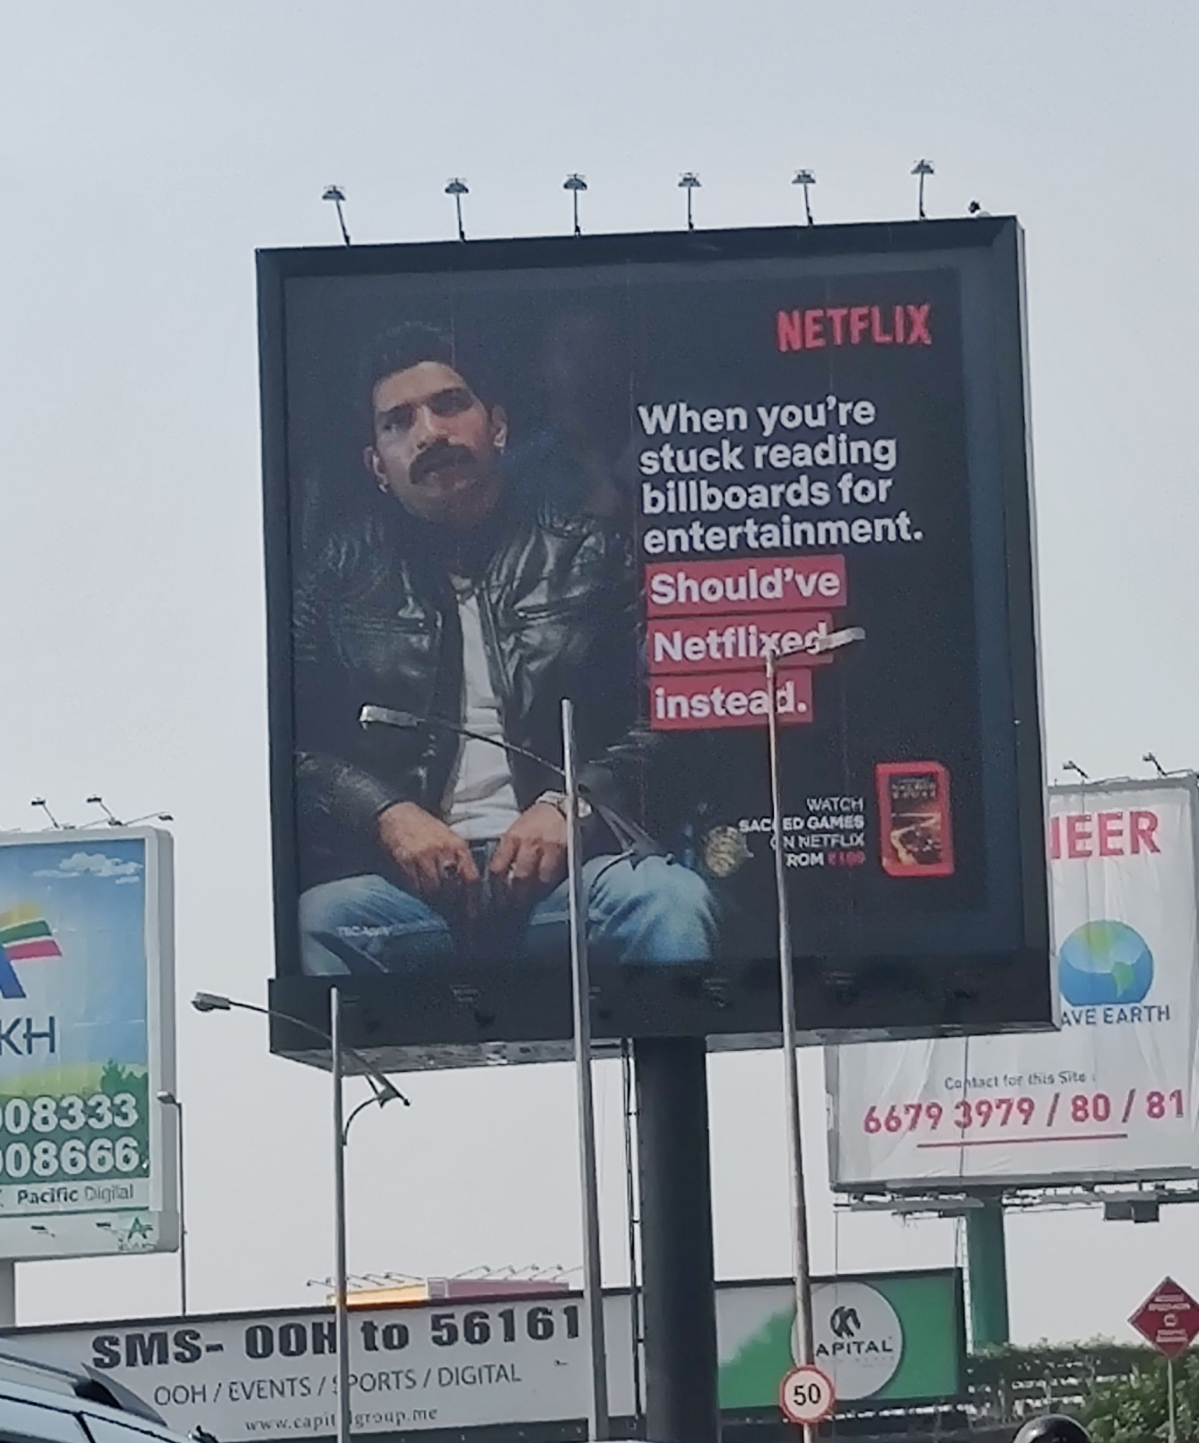 A Netflix billboard spotted in Bandra